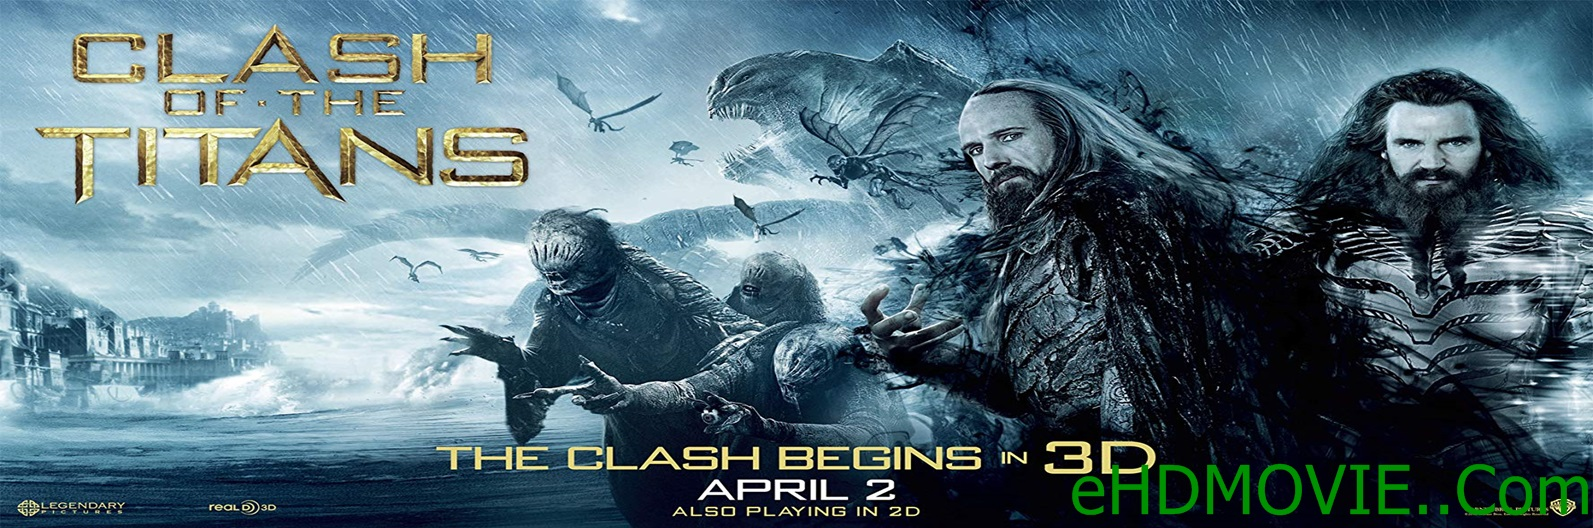 Clash Of The Titans 2010 Full Movie Dual Audio [Hindi – English] 720p - 480p ORG BRRip 350MB - 850MB ESubs Free Download